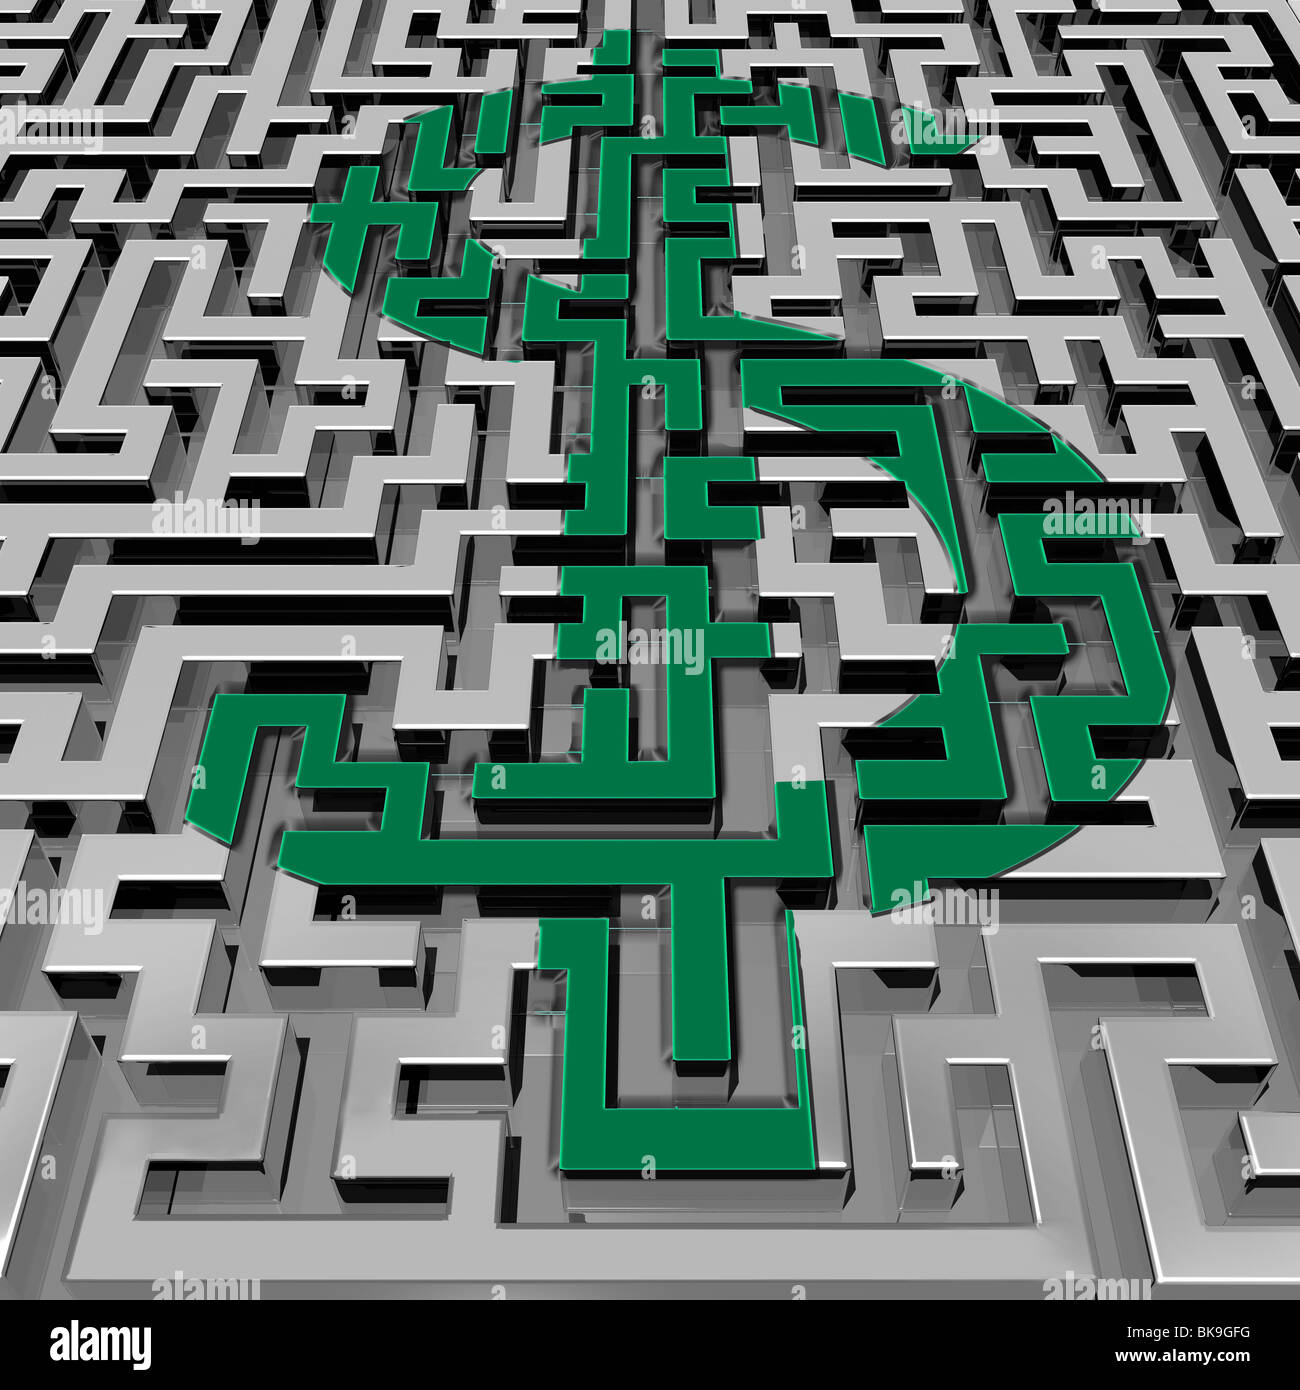 Metal Maze by Mike Agliolo, computer graphics - Stock Image